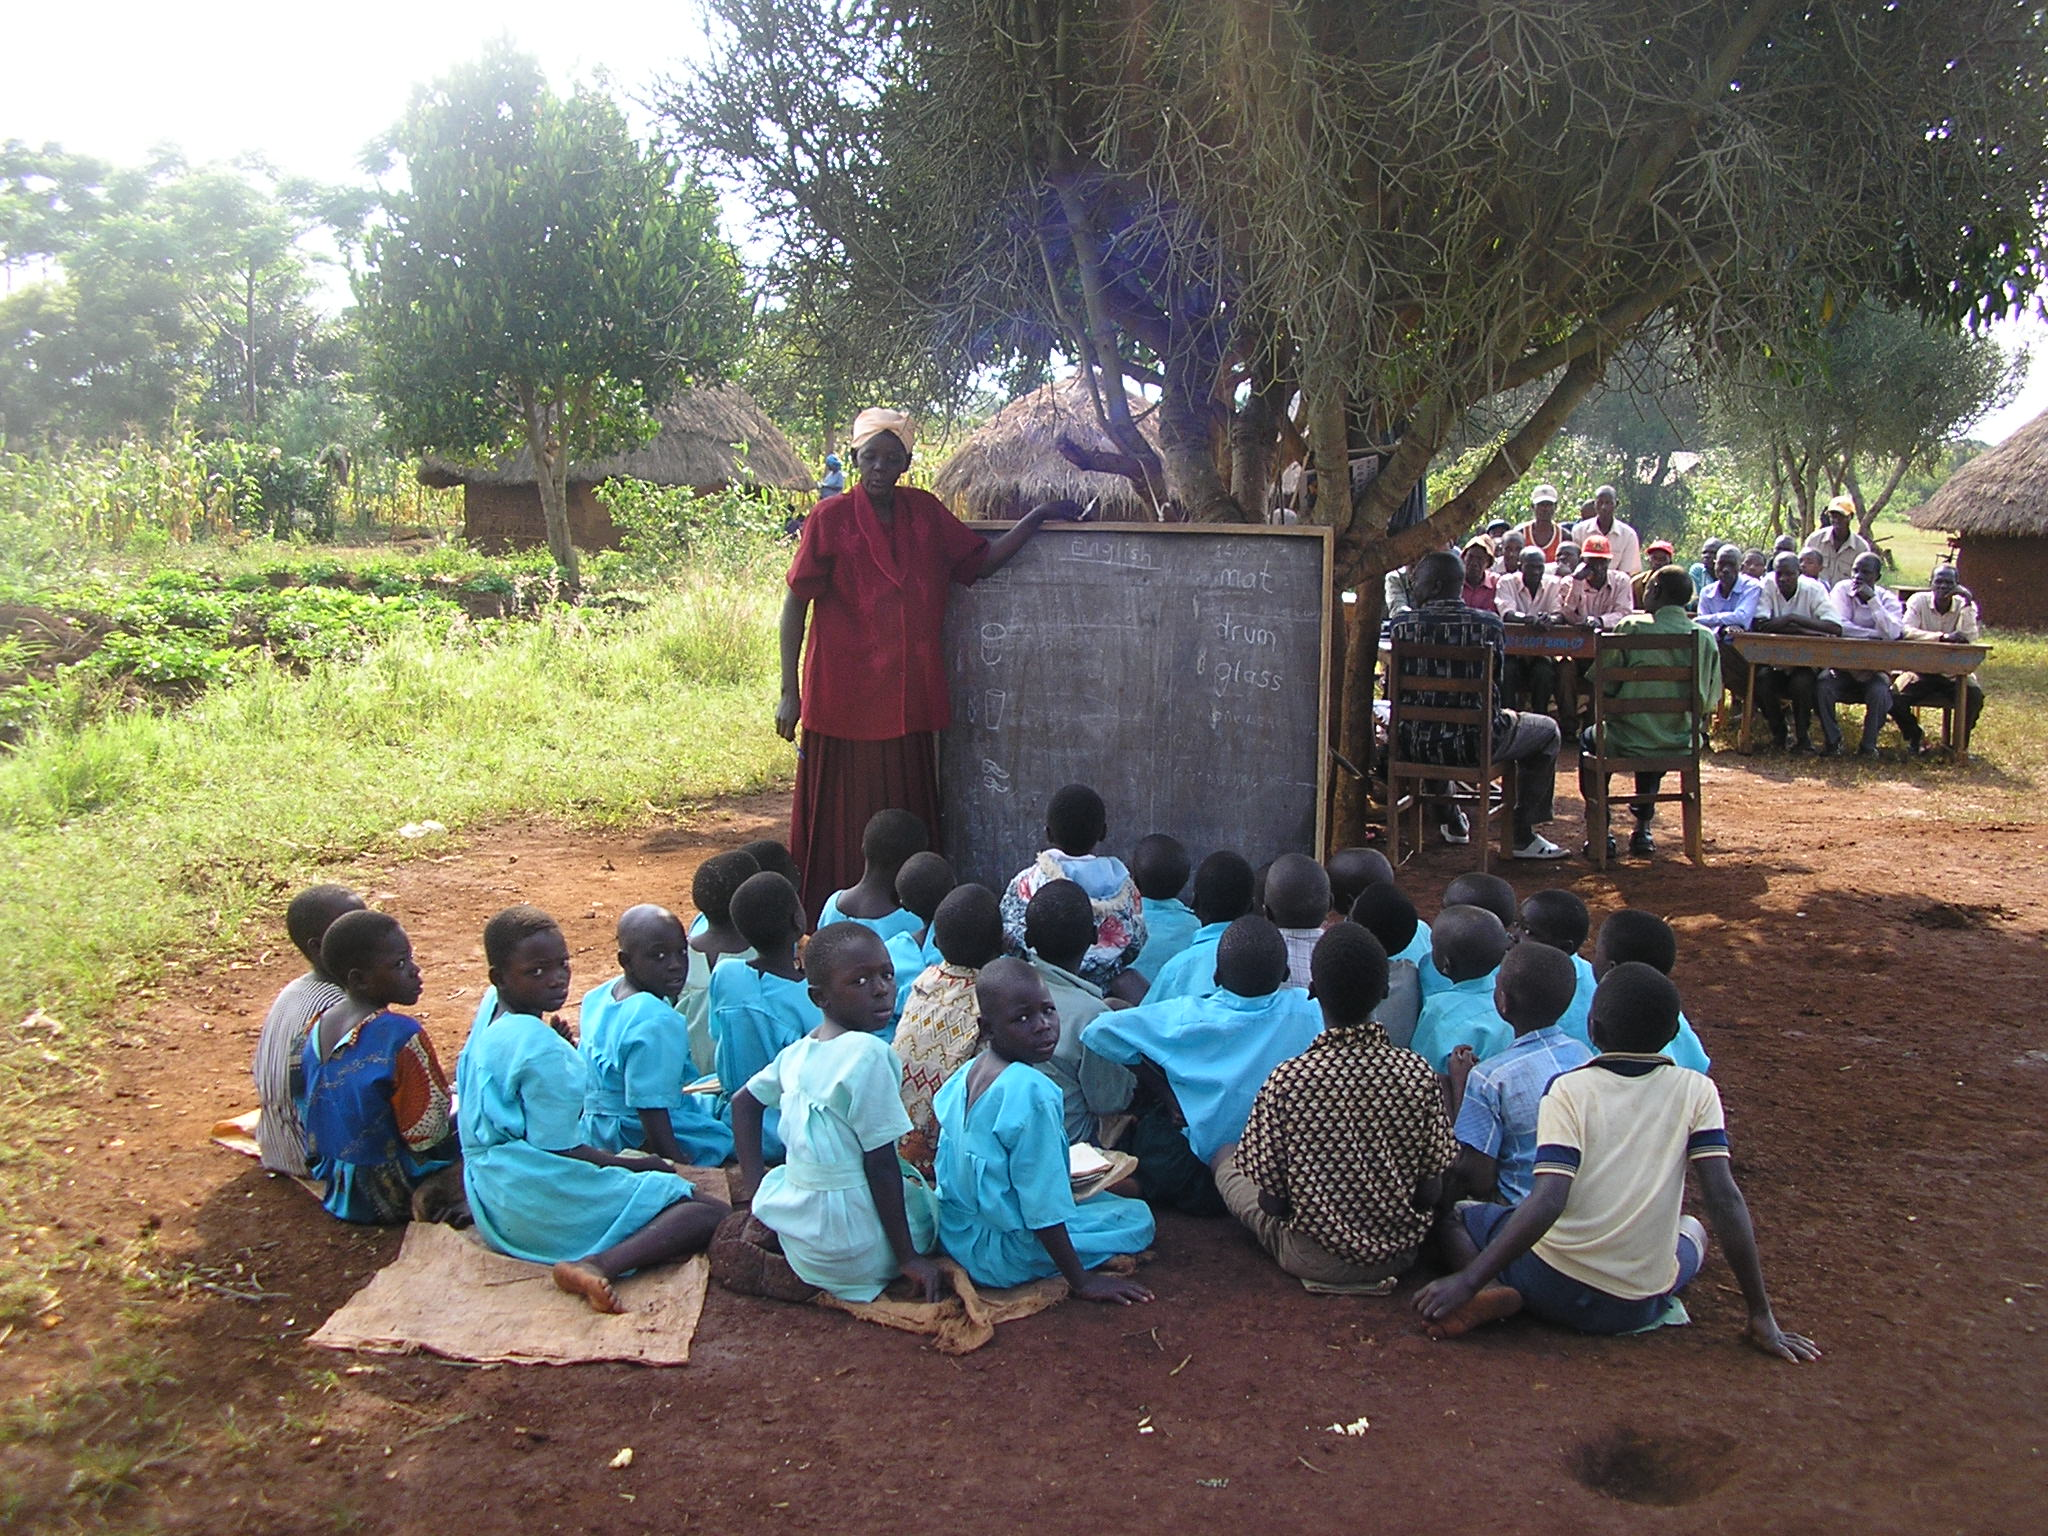 Many children have lessons outside, Seated on the dirty ground under the shade of trees